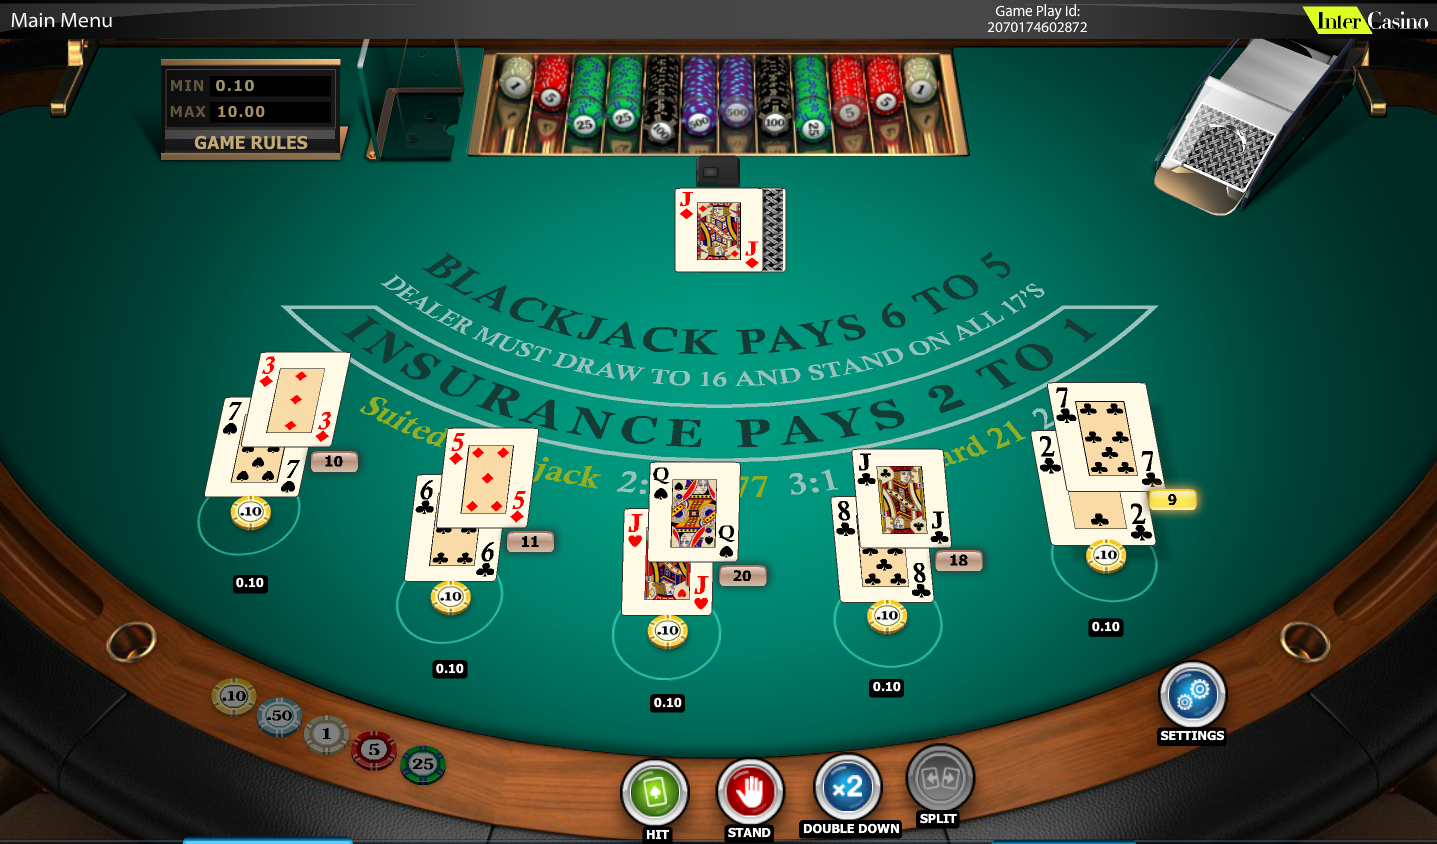 Best blackjack online casino